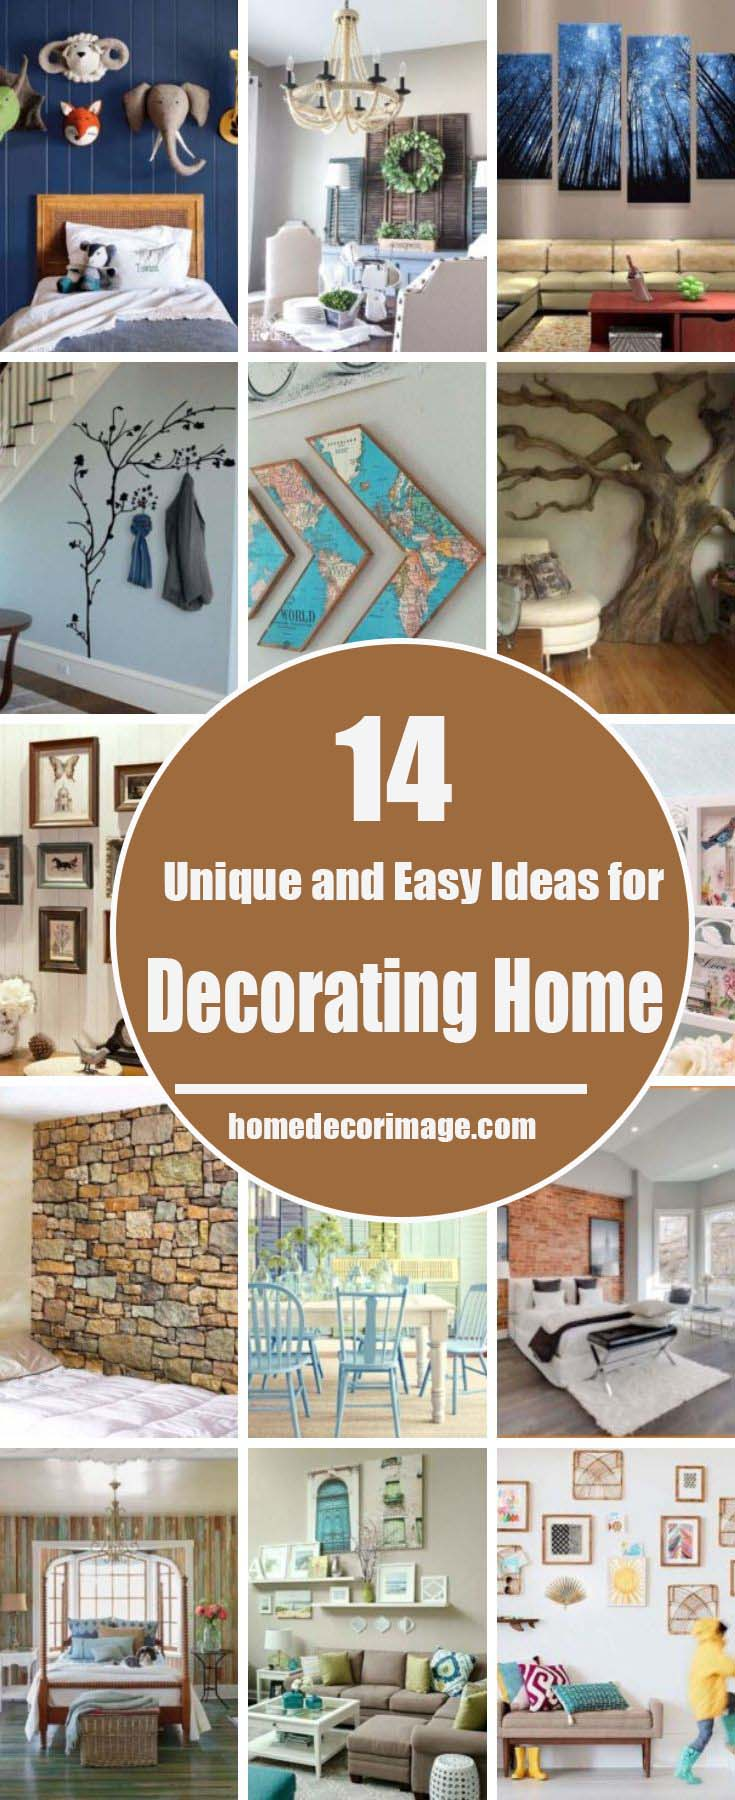 Ideas on shaping the walls with decorative wallpapers - wood, brick and stone textured, with paintings, glass items, flowers and other accessories. #home #decor #homedecorimage